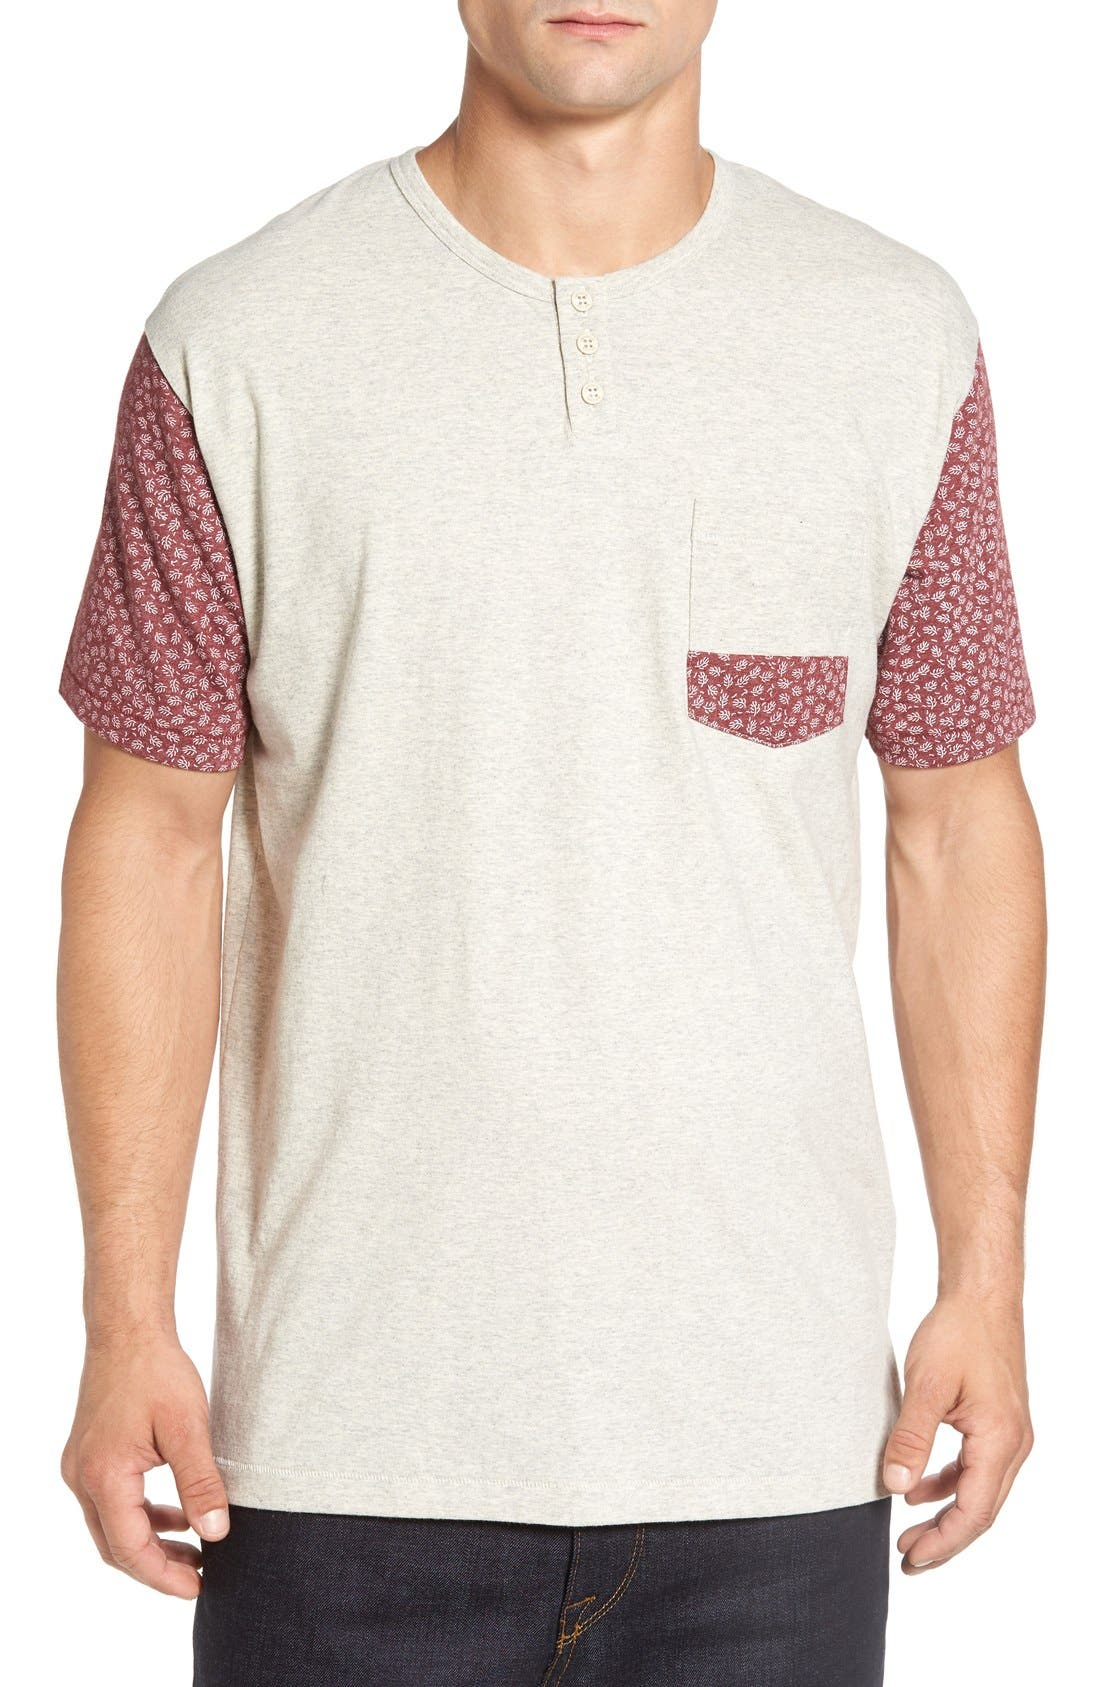 Imperial Motion 'Harper' Short Sleeve Pocket Henley T-Shirt